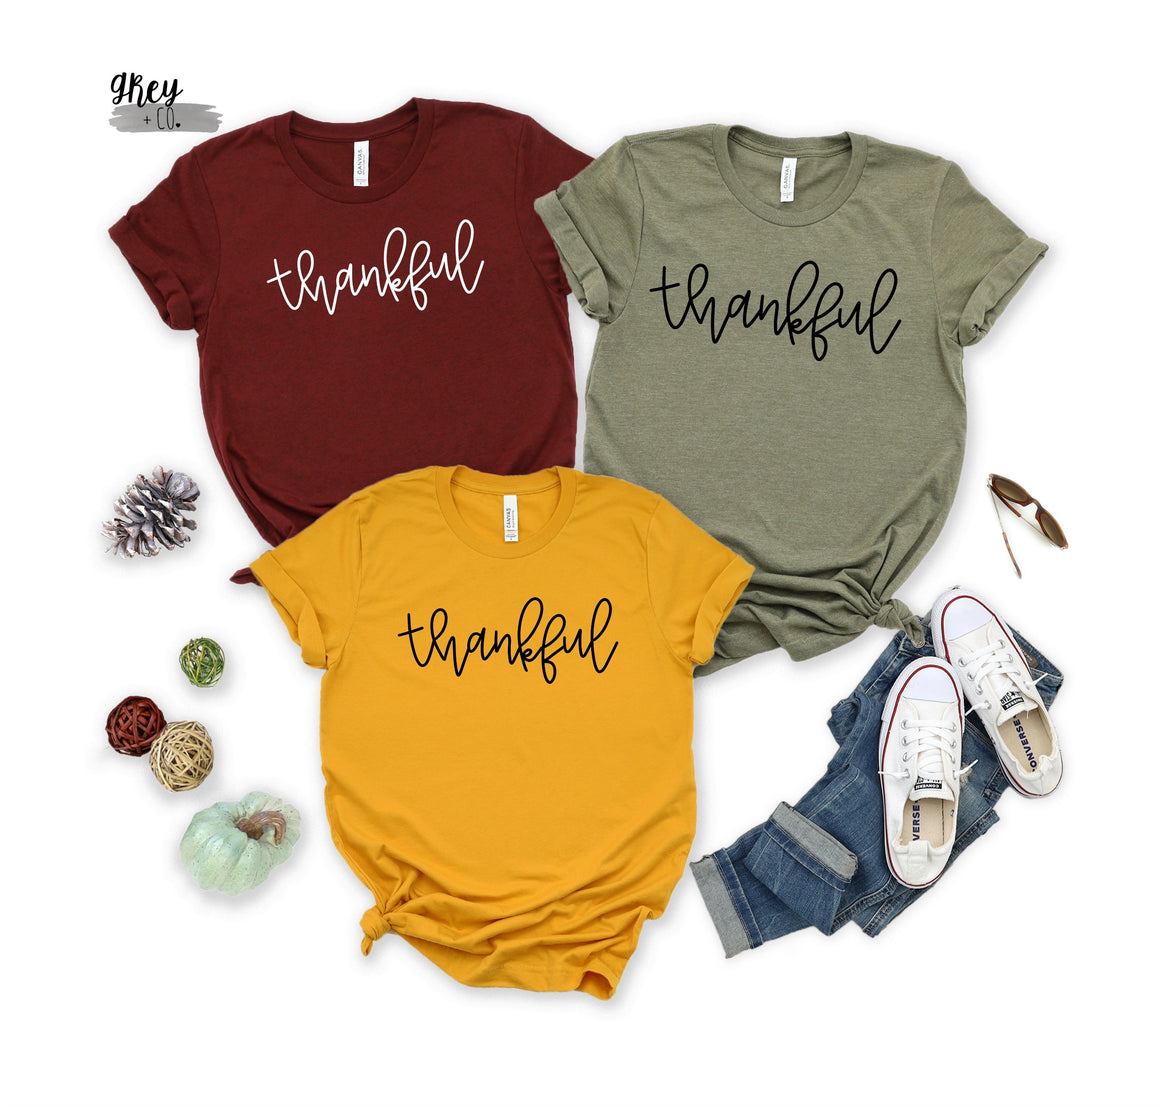 Thankful tee {Grey + co}